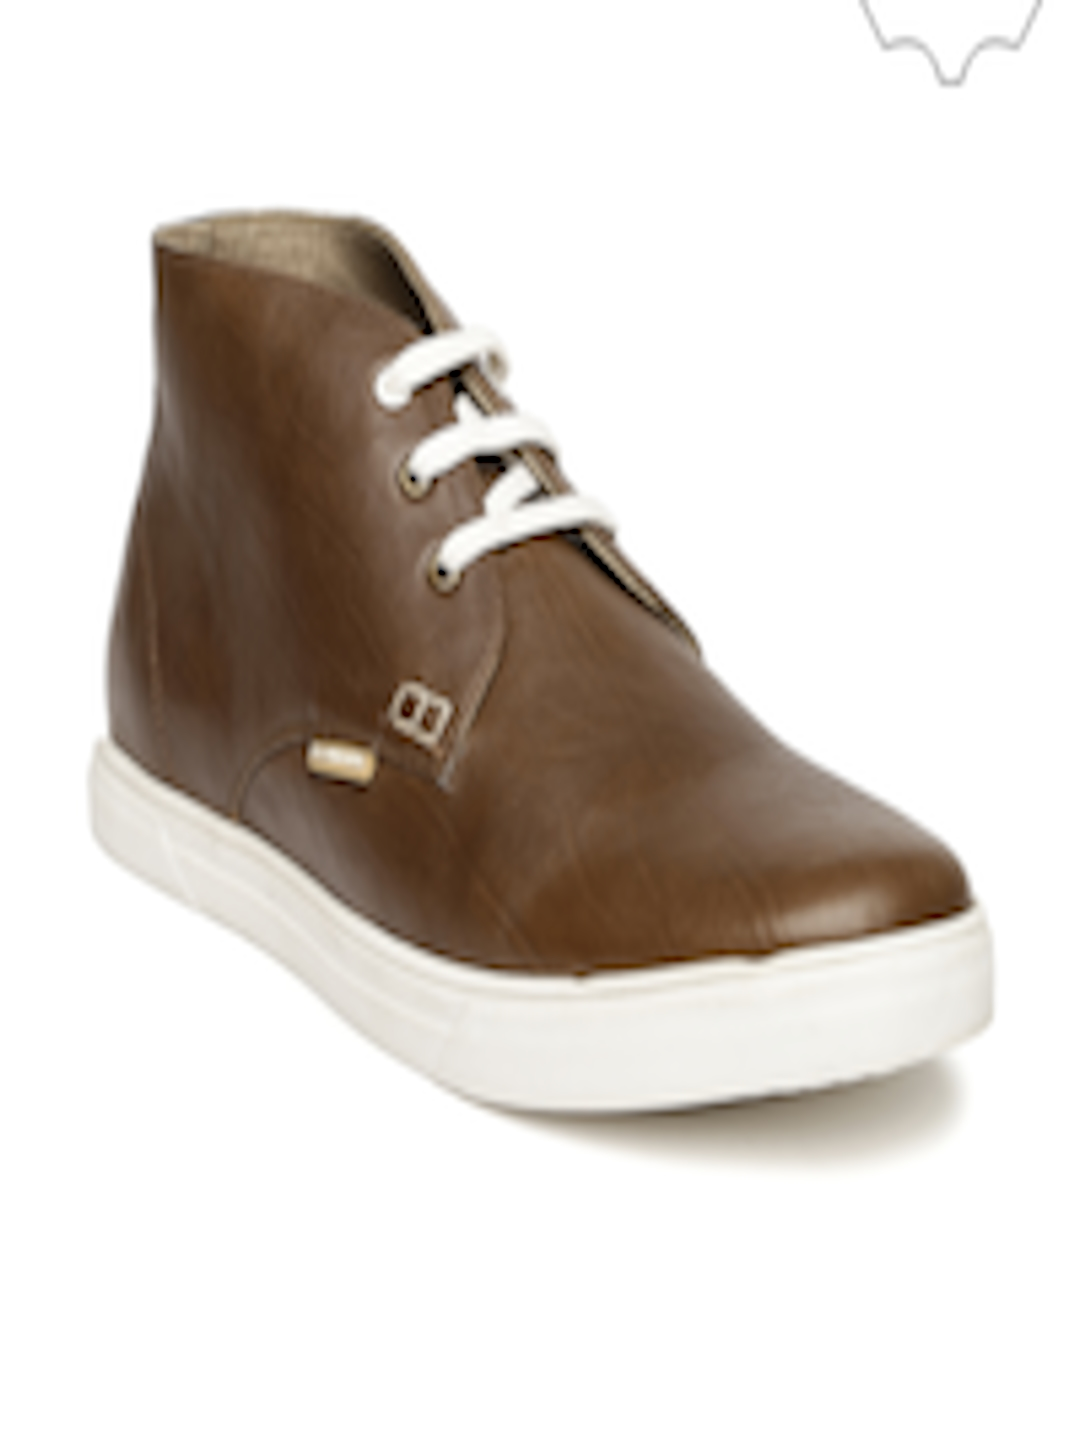 buy u s polo assn men brown leather casual shoes casual shoes for men 1368154 myntra. Black Bedroom Furniture Sets. Home Design Ideas